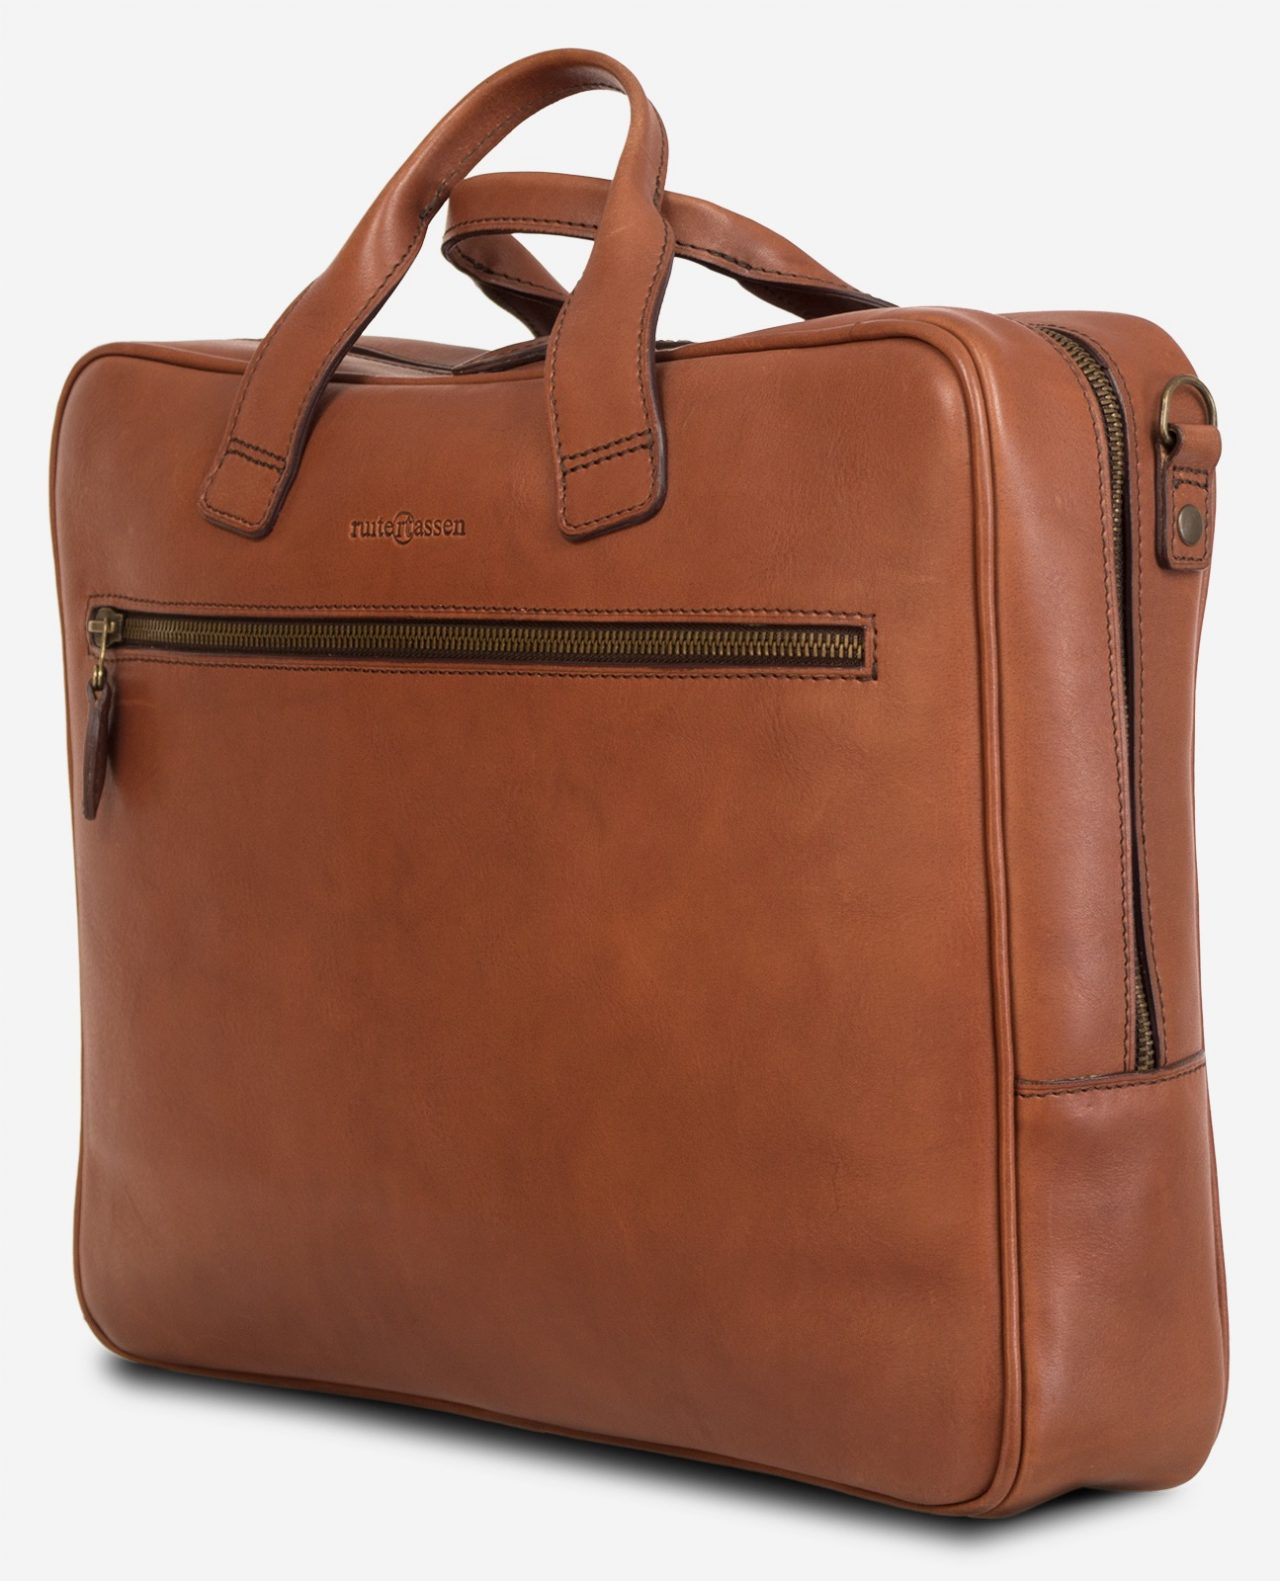 Side view of the luxury brown vegetable-tanned leather briefcase for men.